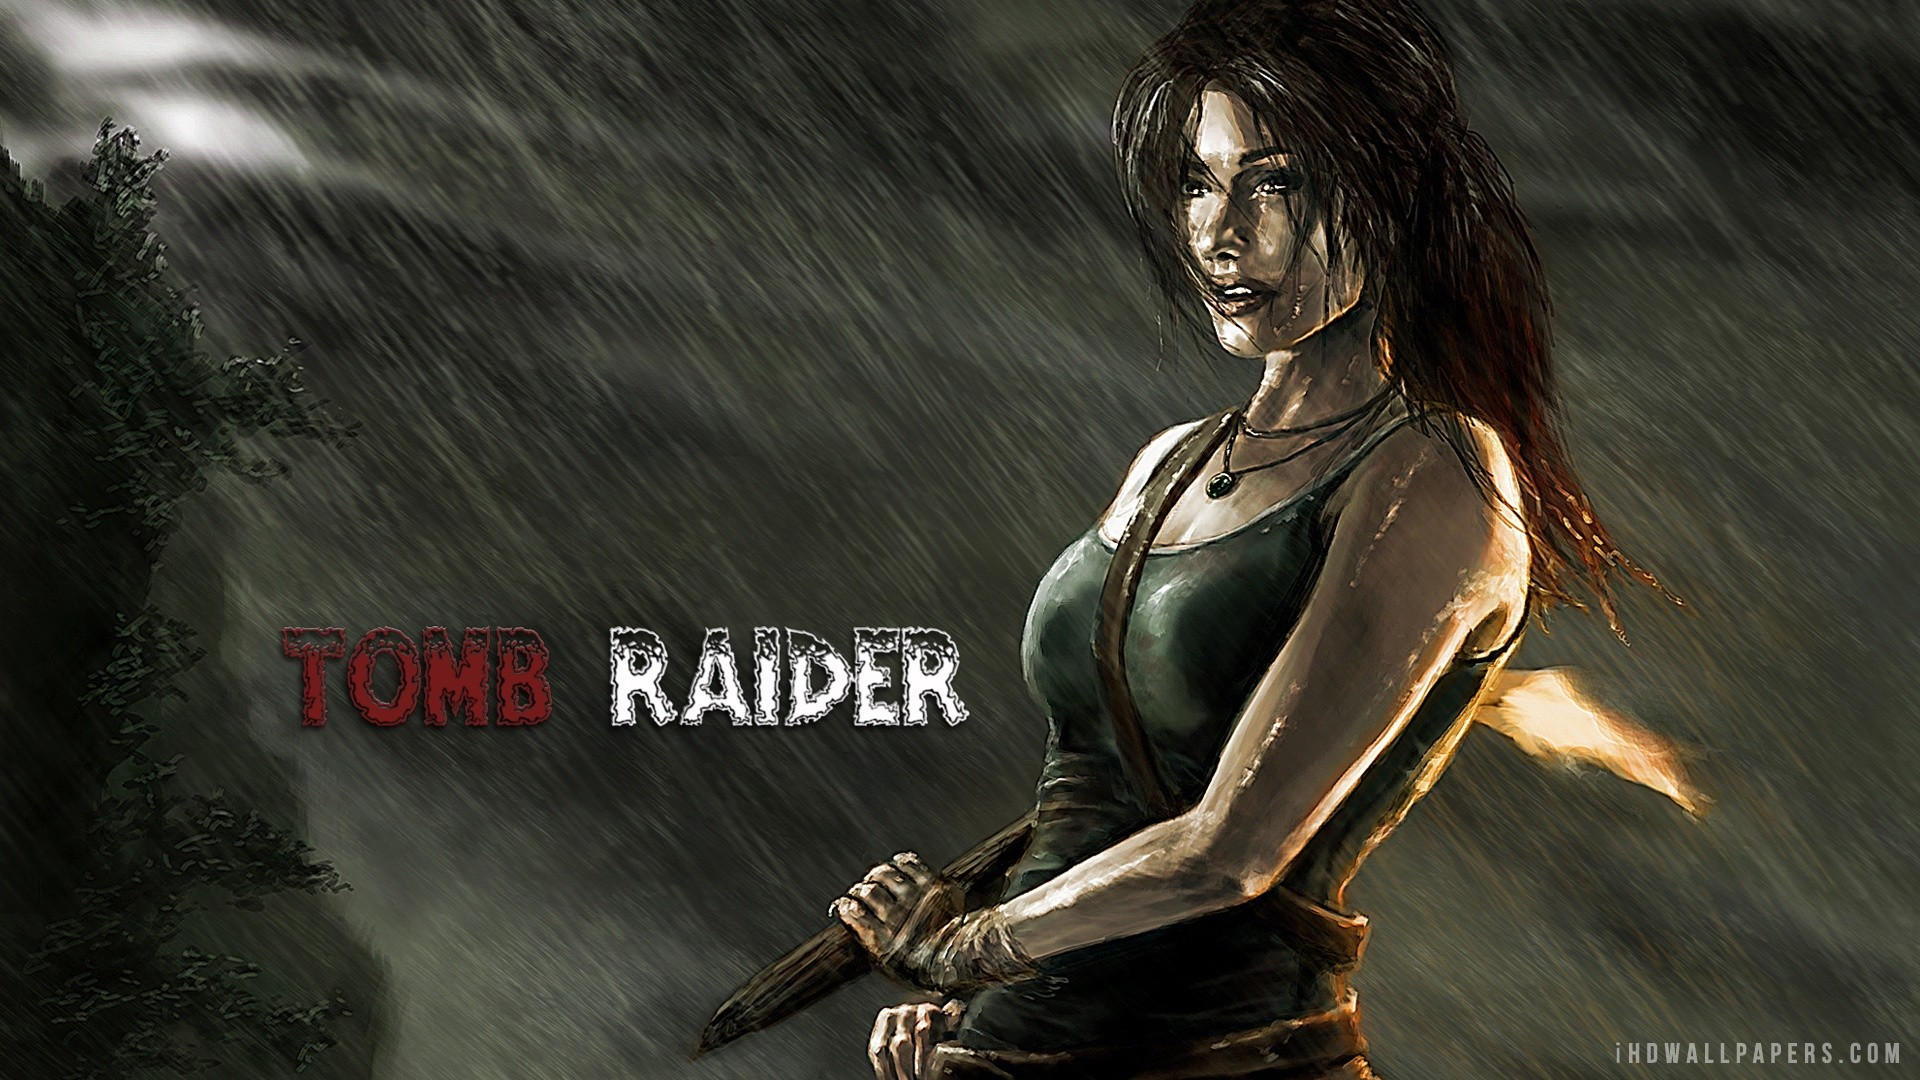 1920x1080 2012 Tomb Raider HD Wallpaper - iHD Wallpapers